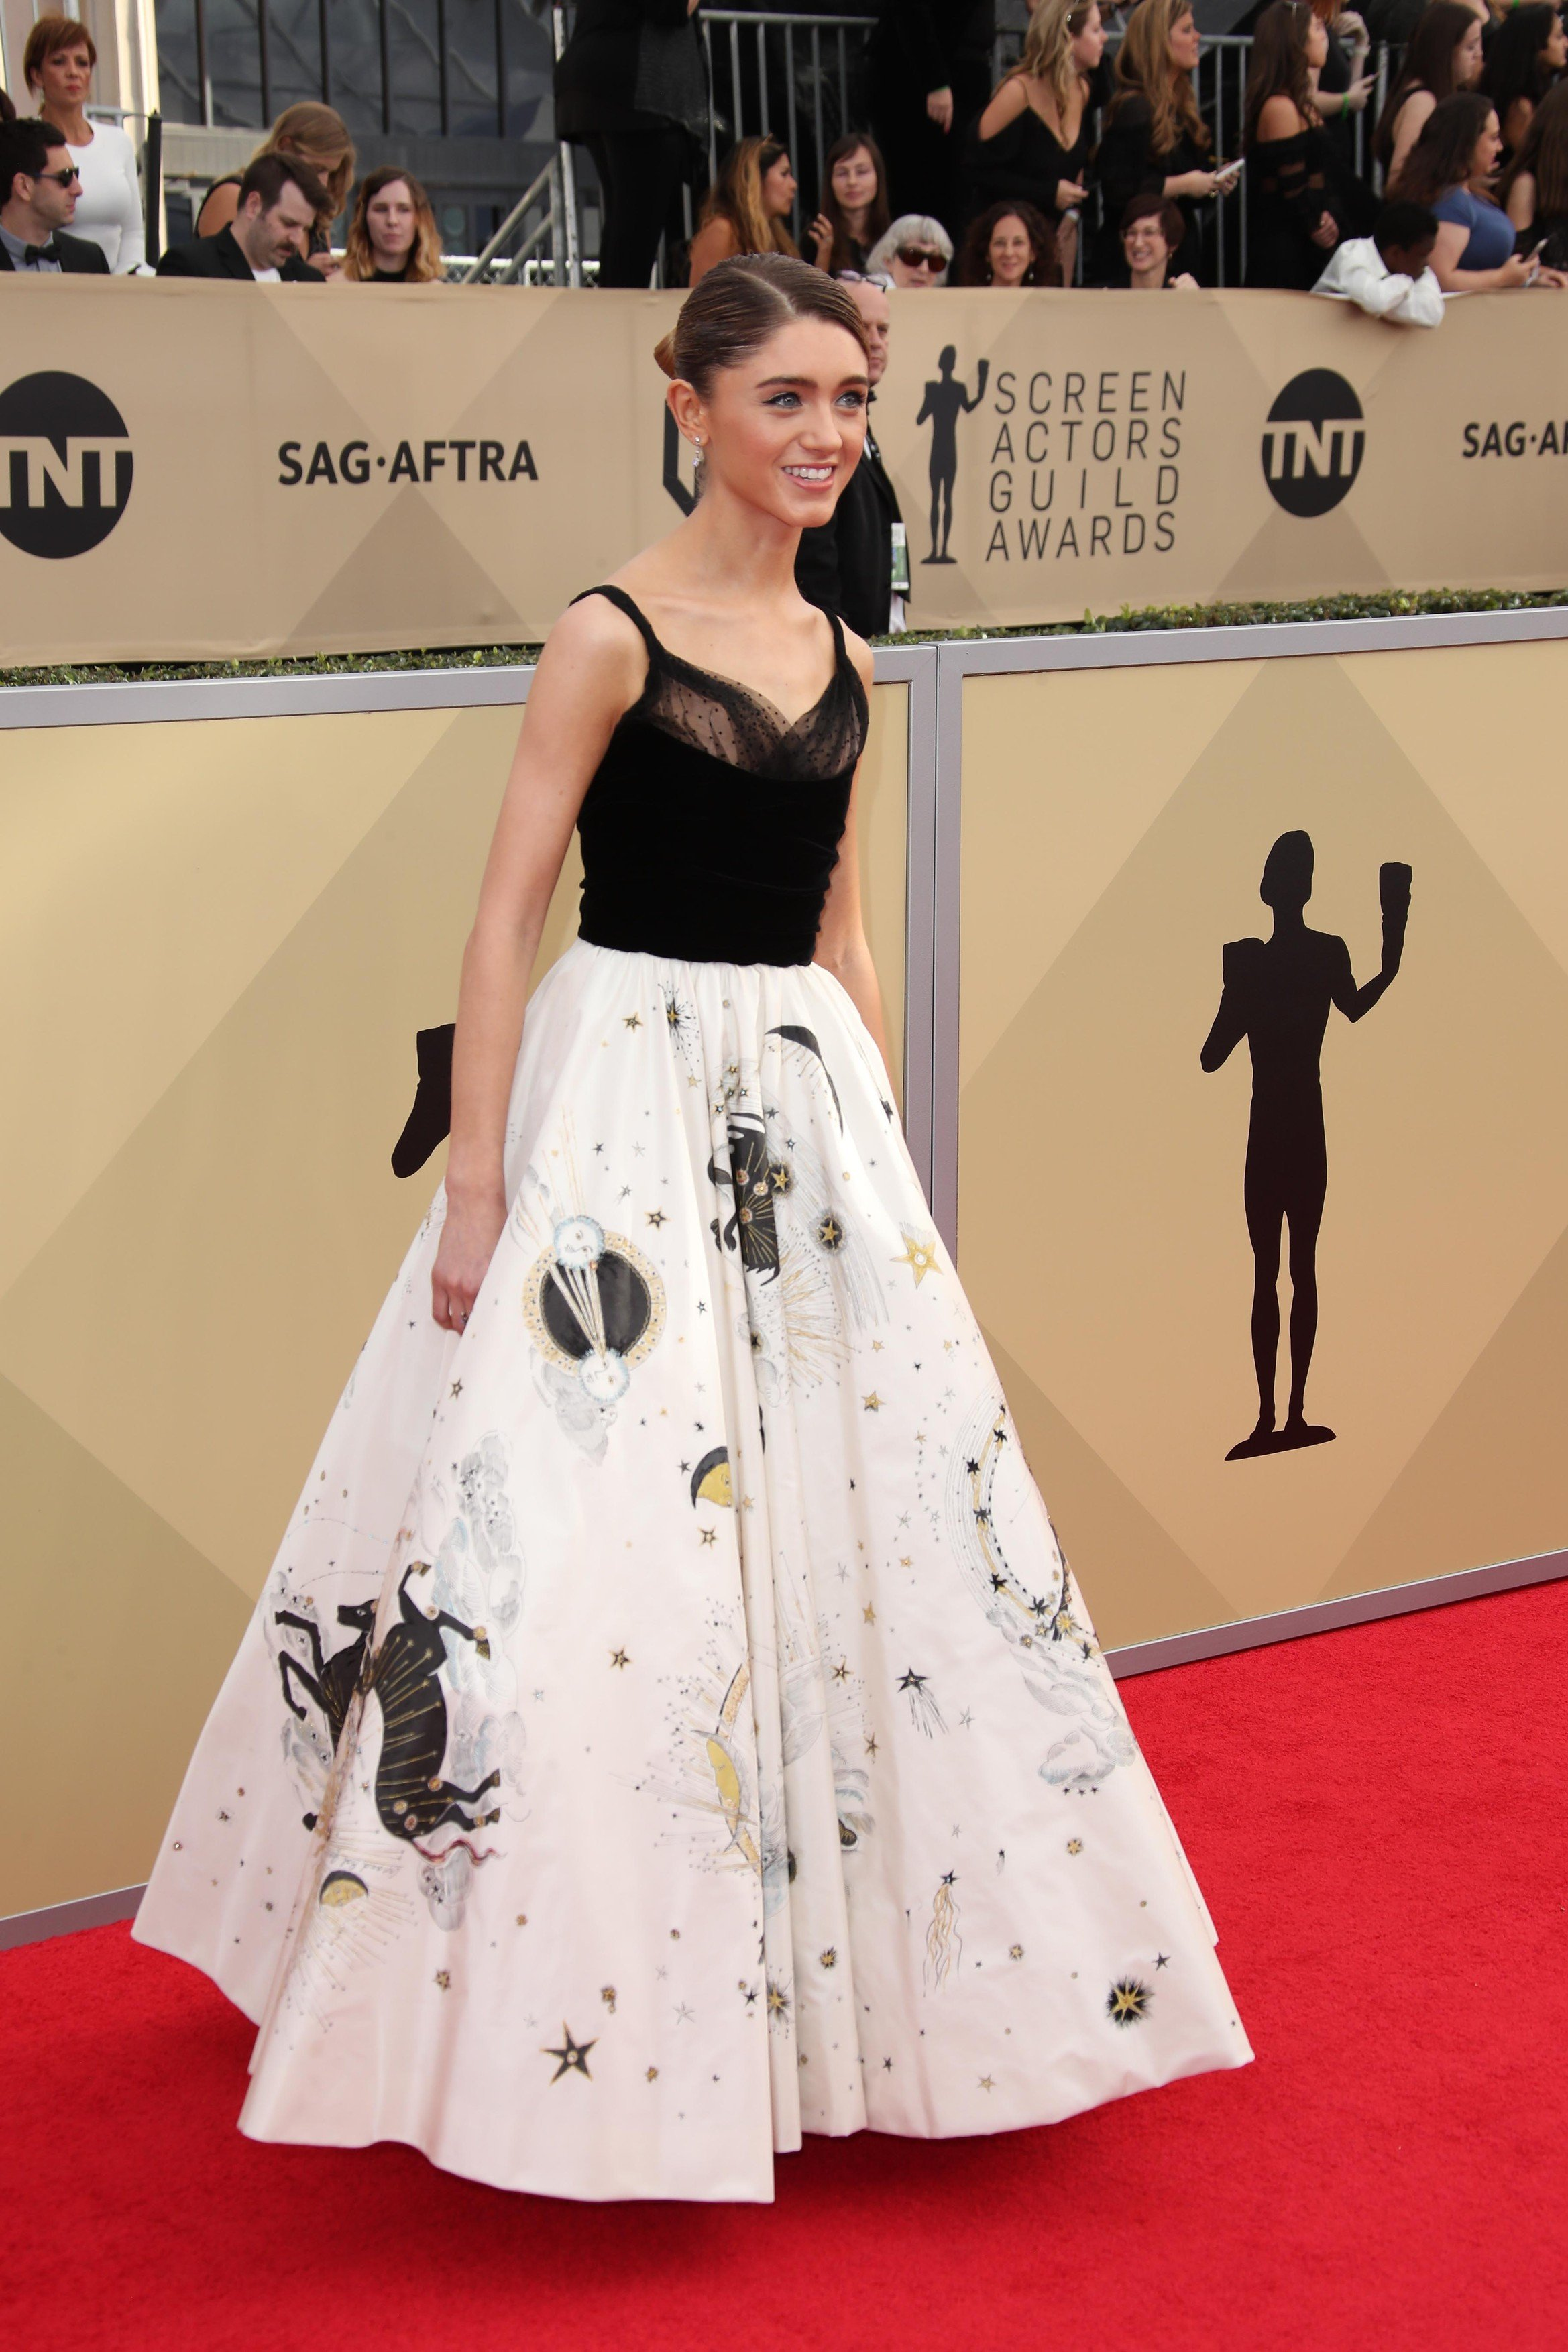 Jan 21, 2018; Los Angeles, CA, USA; Natalia Dyer arrives at the 24th annual Screen Actors Guild Awards at the Shrine Auditorium., Image: 360889986, License: Rights-managed, Restrictions: *** World Rights *** No Tabloids ***, Model Release: no, Credit line: Profimedia, SIPA USA